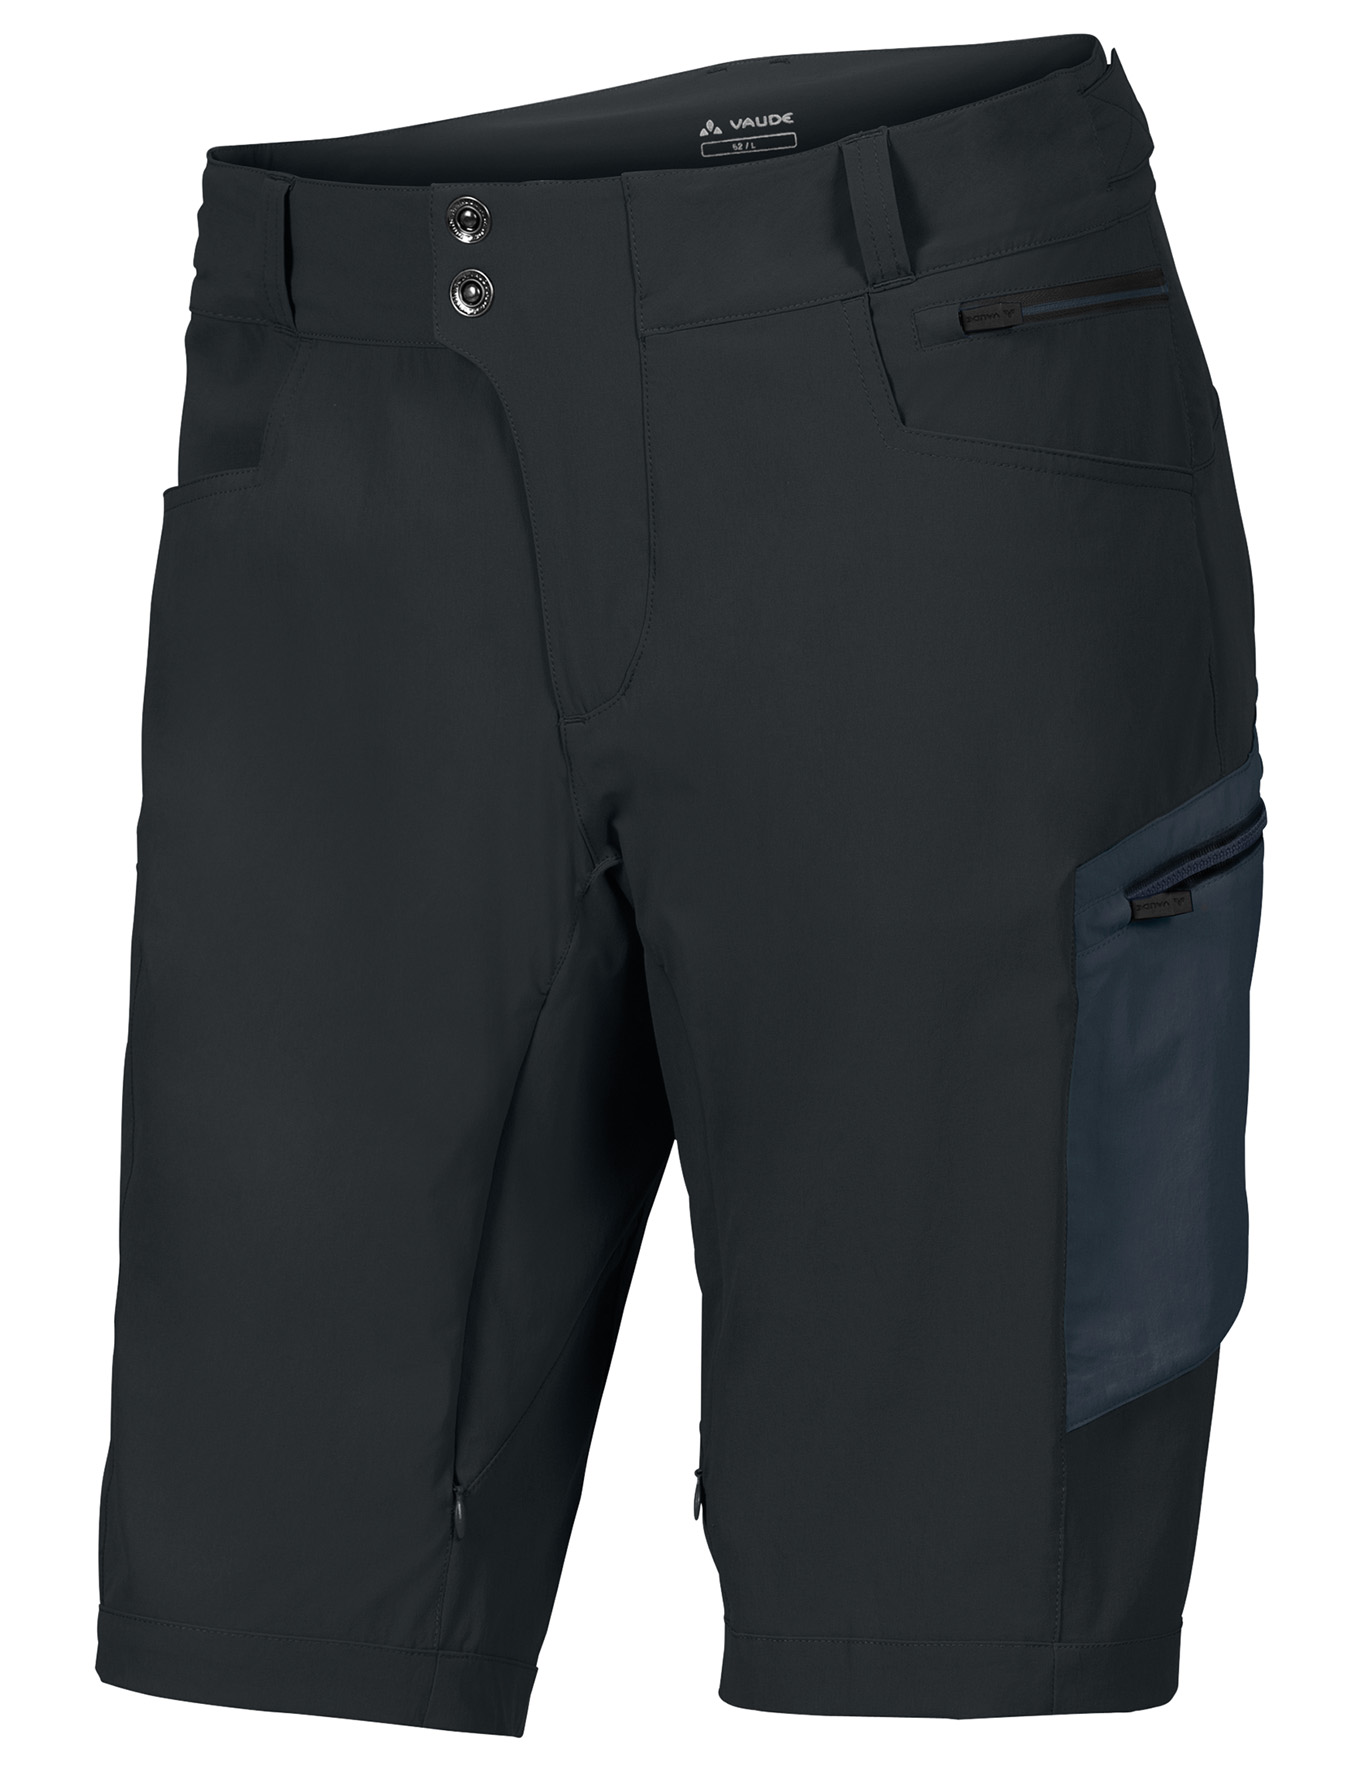 VAUDE Men´s Altissimo Shorts black Größe L - schneider-sports